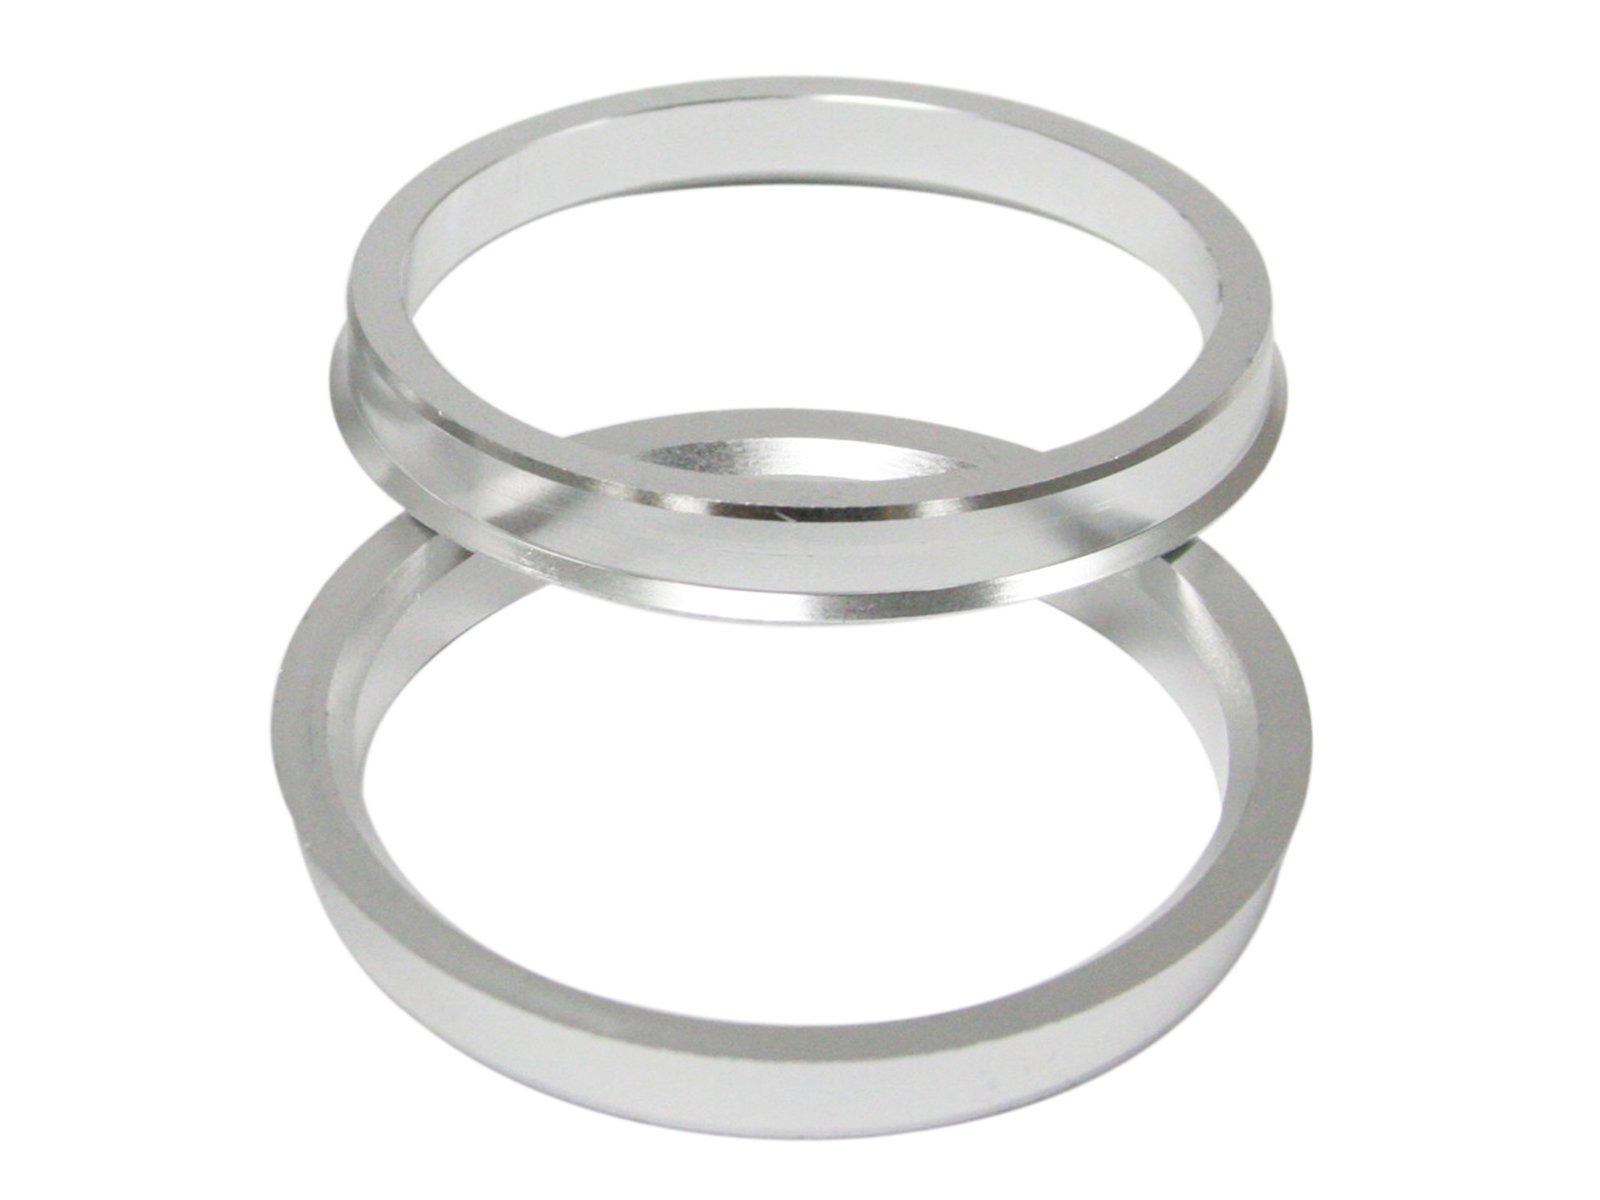 Hubcentric Rings (Pack of 4) - 67.1mm ID to 73.1mm OD - Silver Aluminum Hubrings - Only Fits 67.1mm Vehicle Hub & 73.1mm Wheel Centerbore - for many Mitsubishi Mazda Kia Hyundai by Precision European Motorwerks (Image #6)